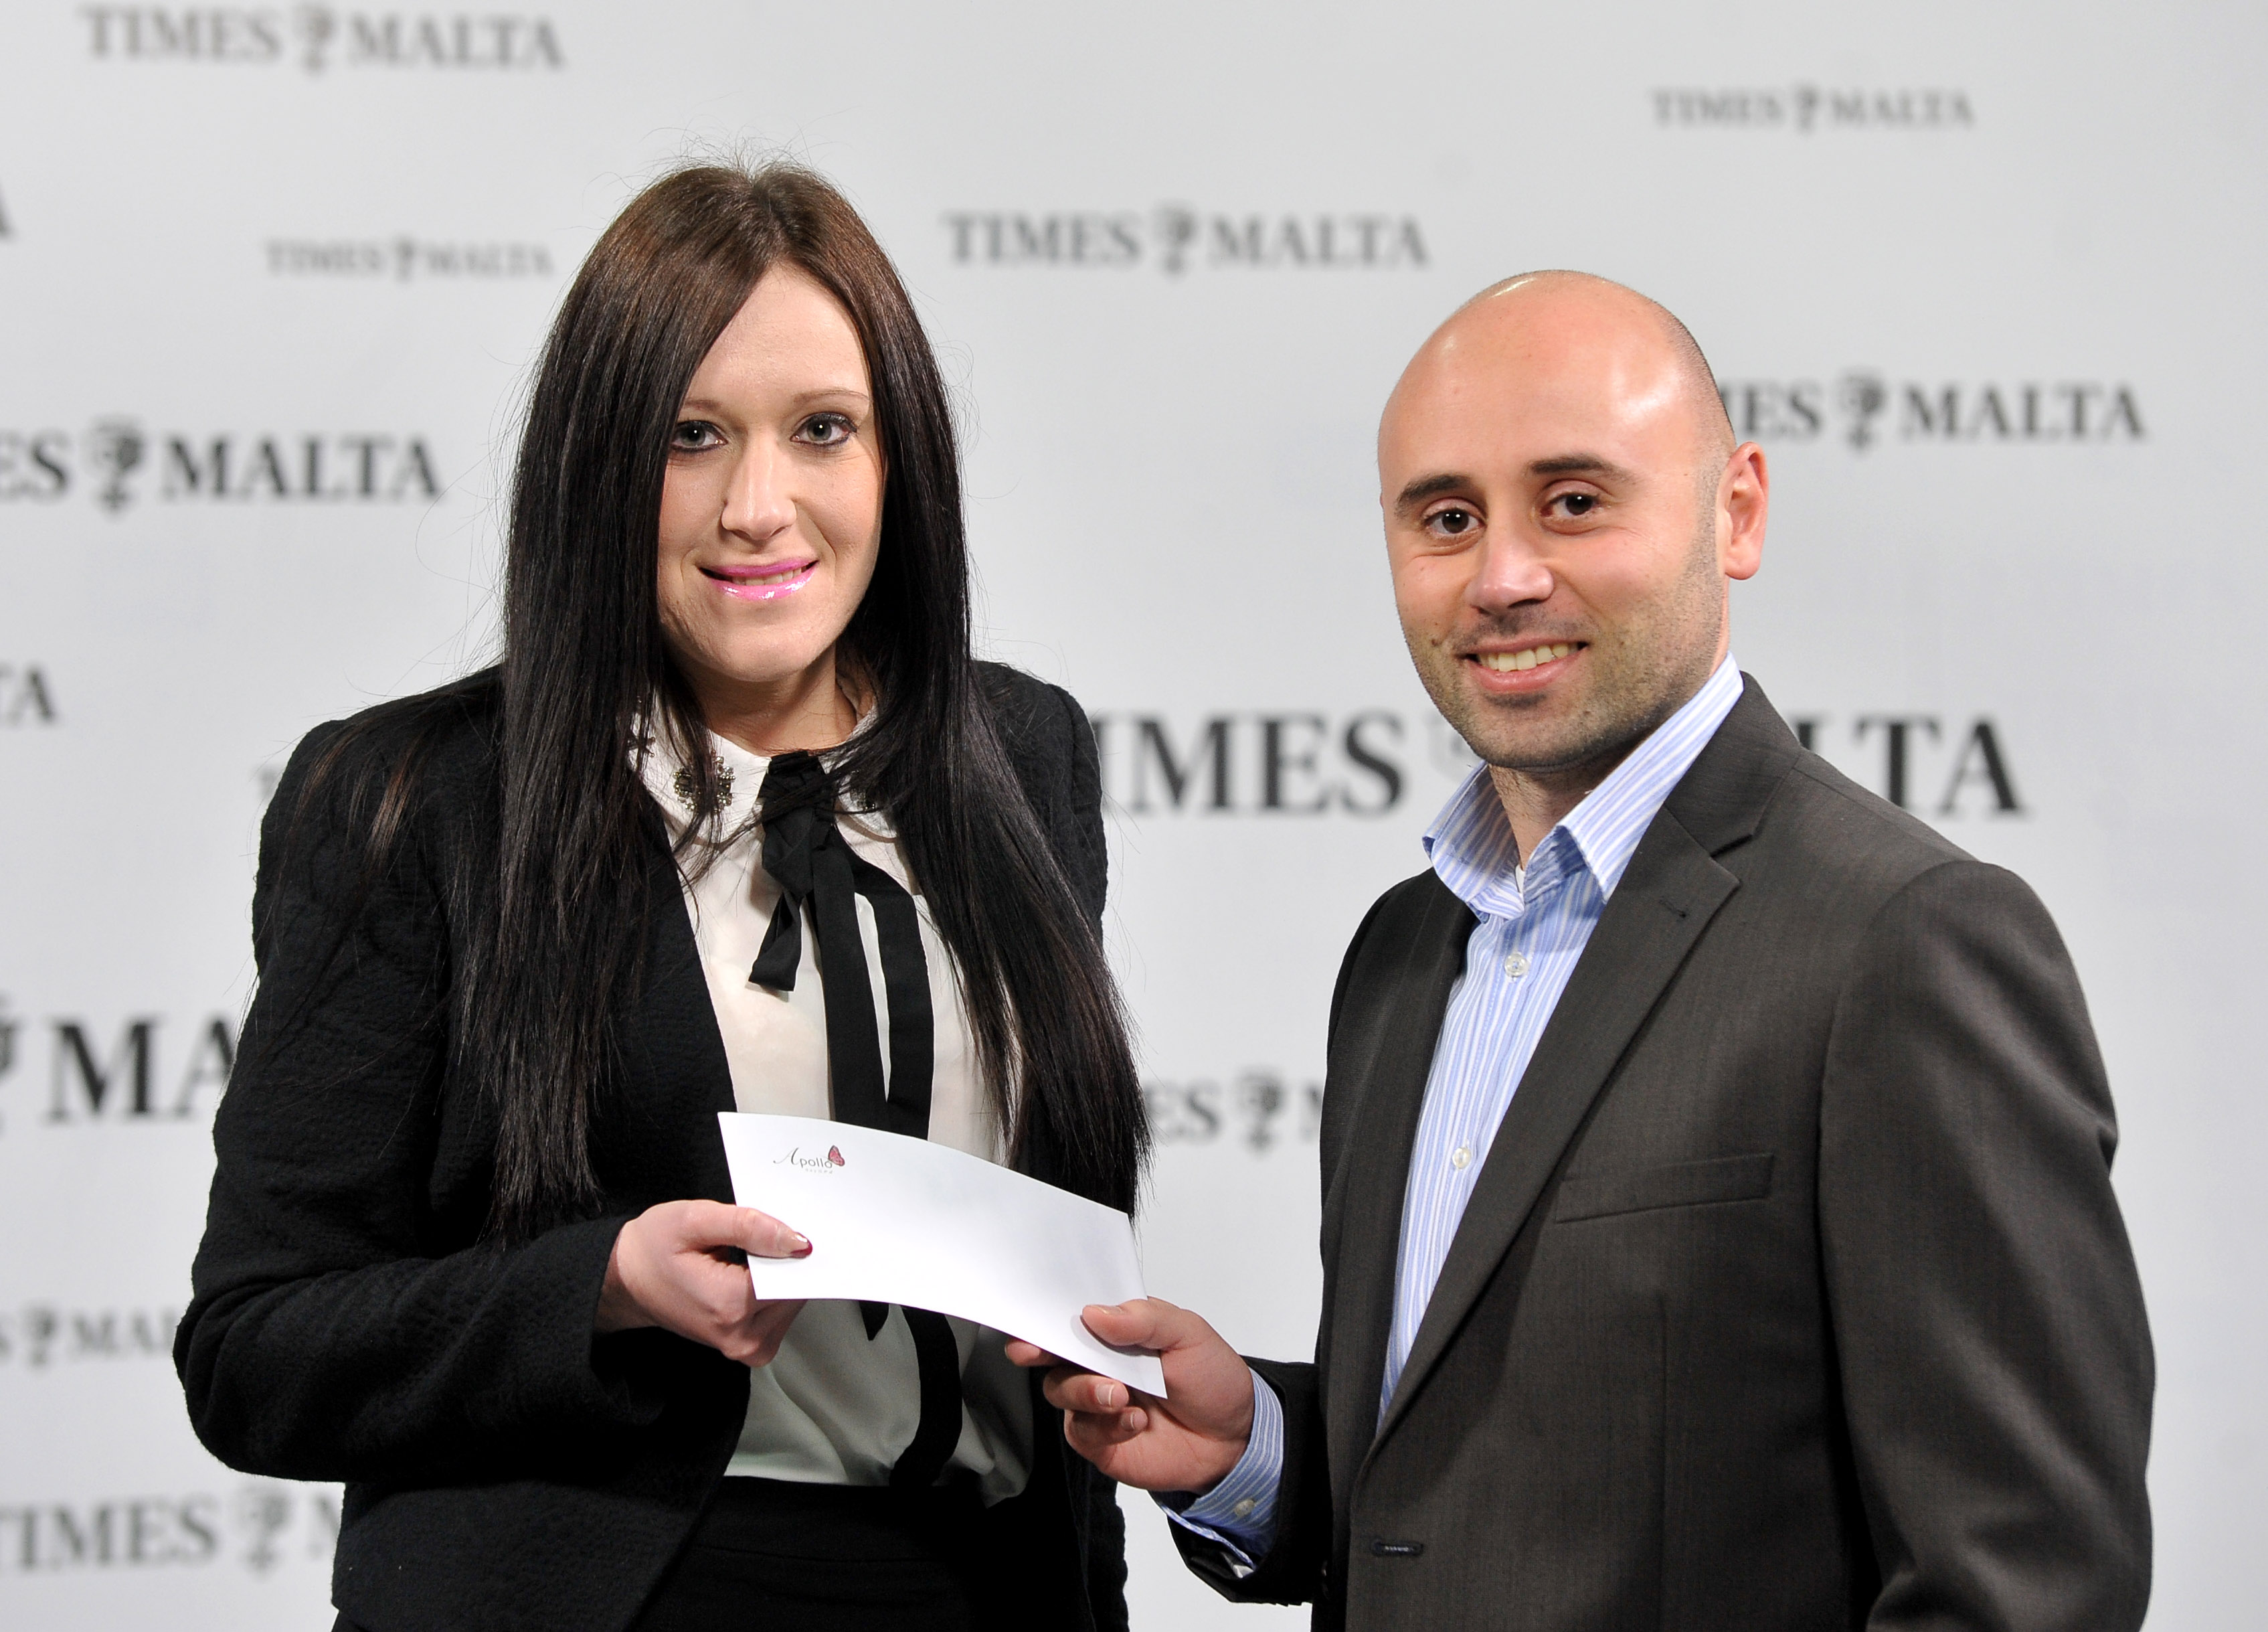 Times of Malta's CCO Alex Galea gives Sherise Atkins her voucher for treatments at the Apollo Spa